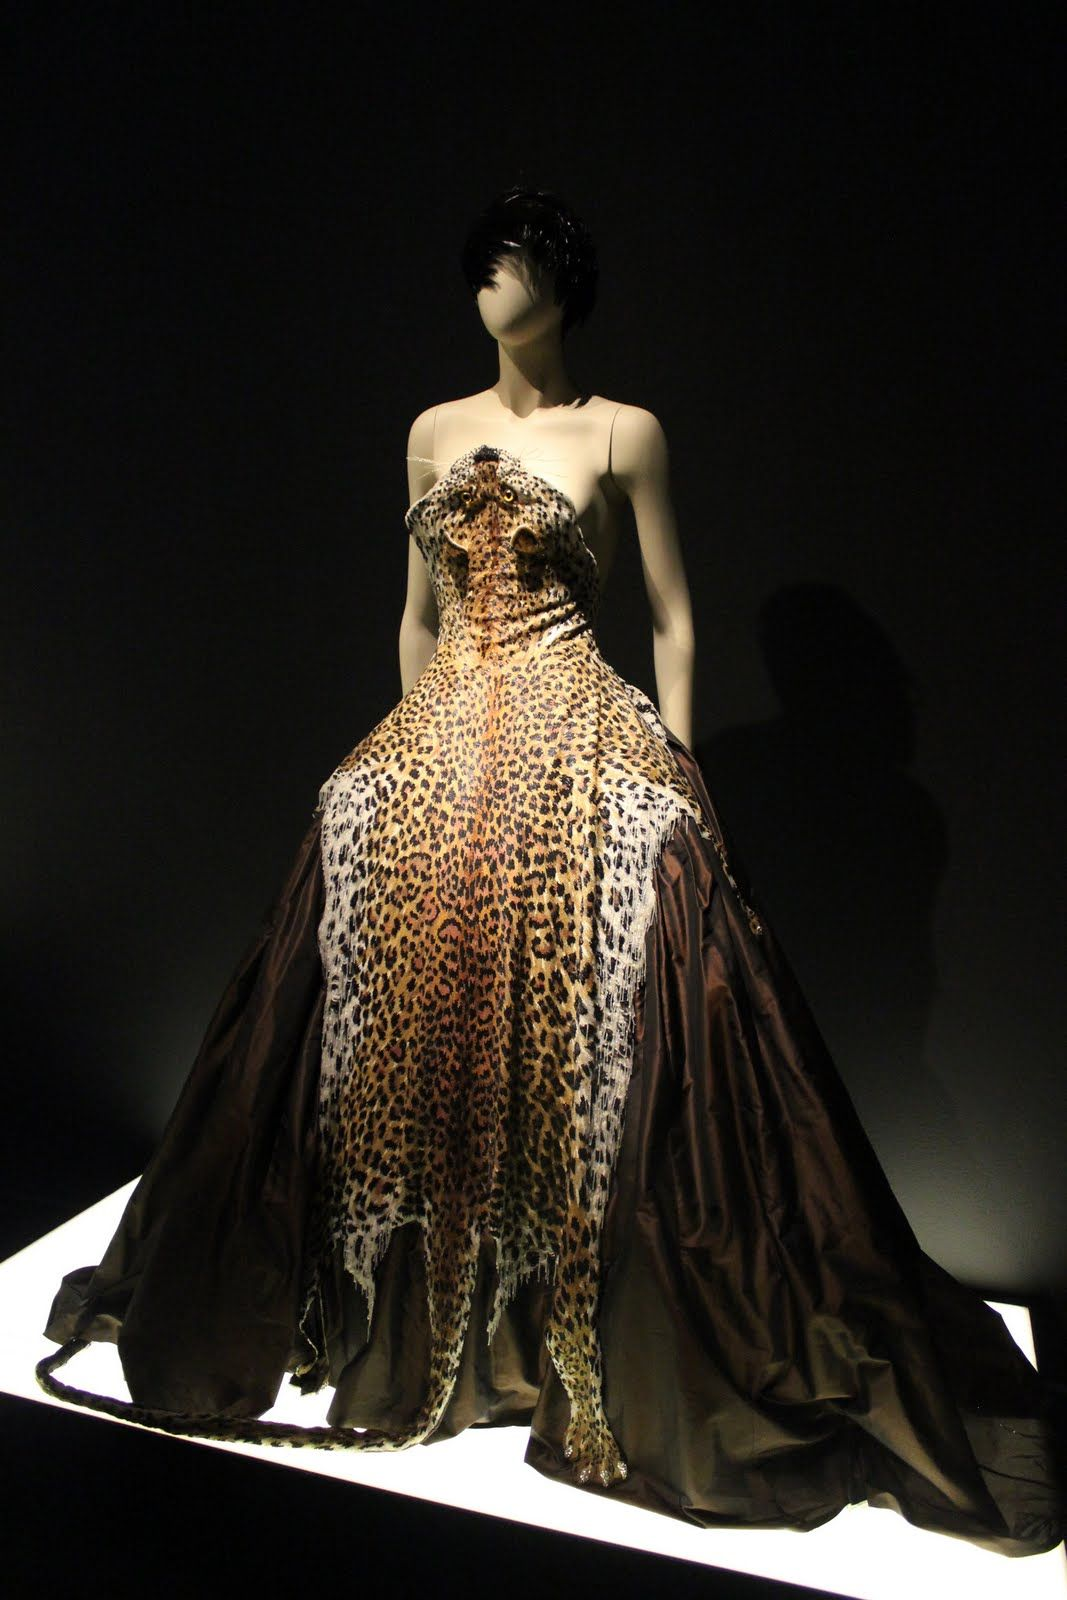 The Fashion World Of Jean Paul Gaultier From Sidewalk To Catwalk Taffeta Evening Gown With Leopard Skin Bead Embroidery And Rhinestone Claws